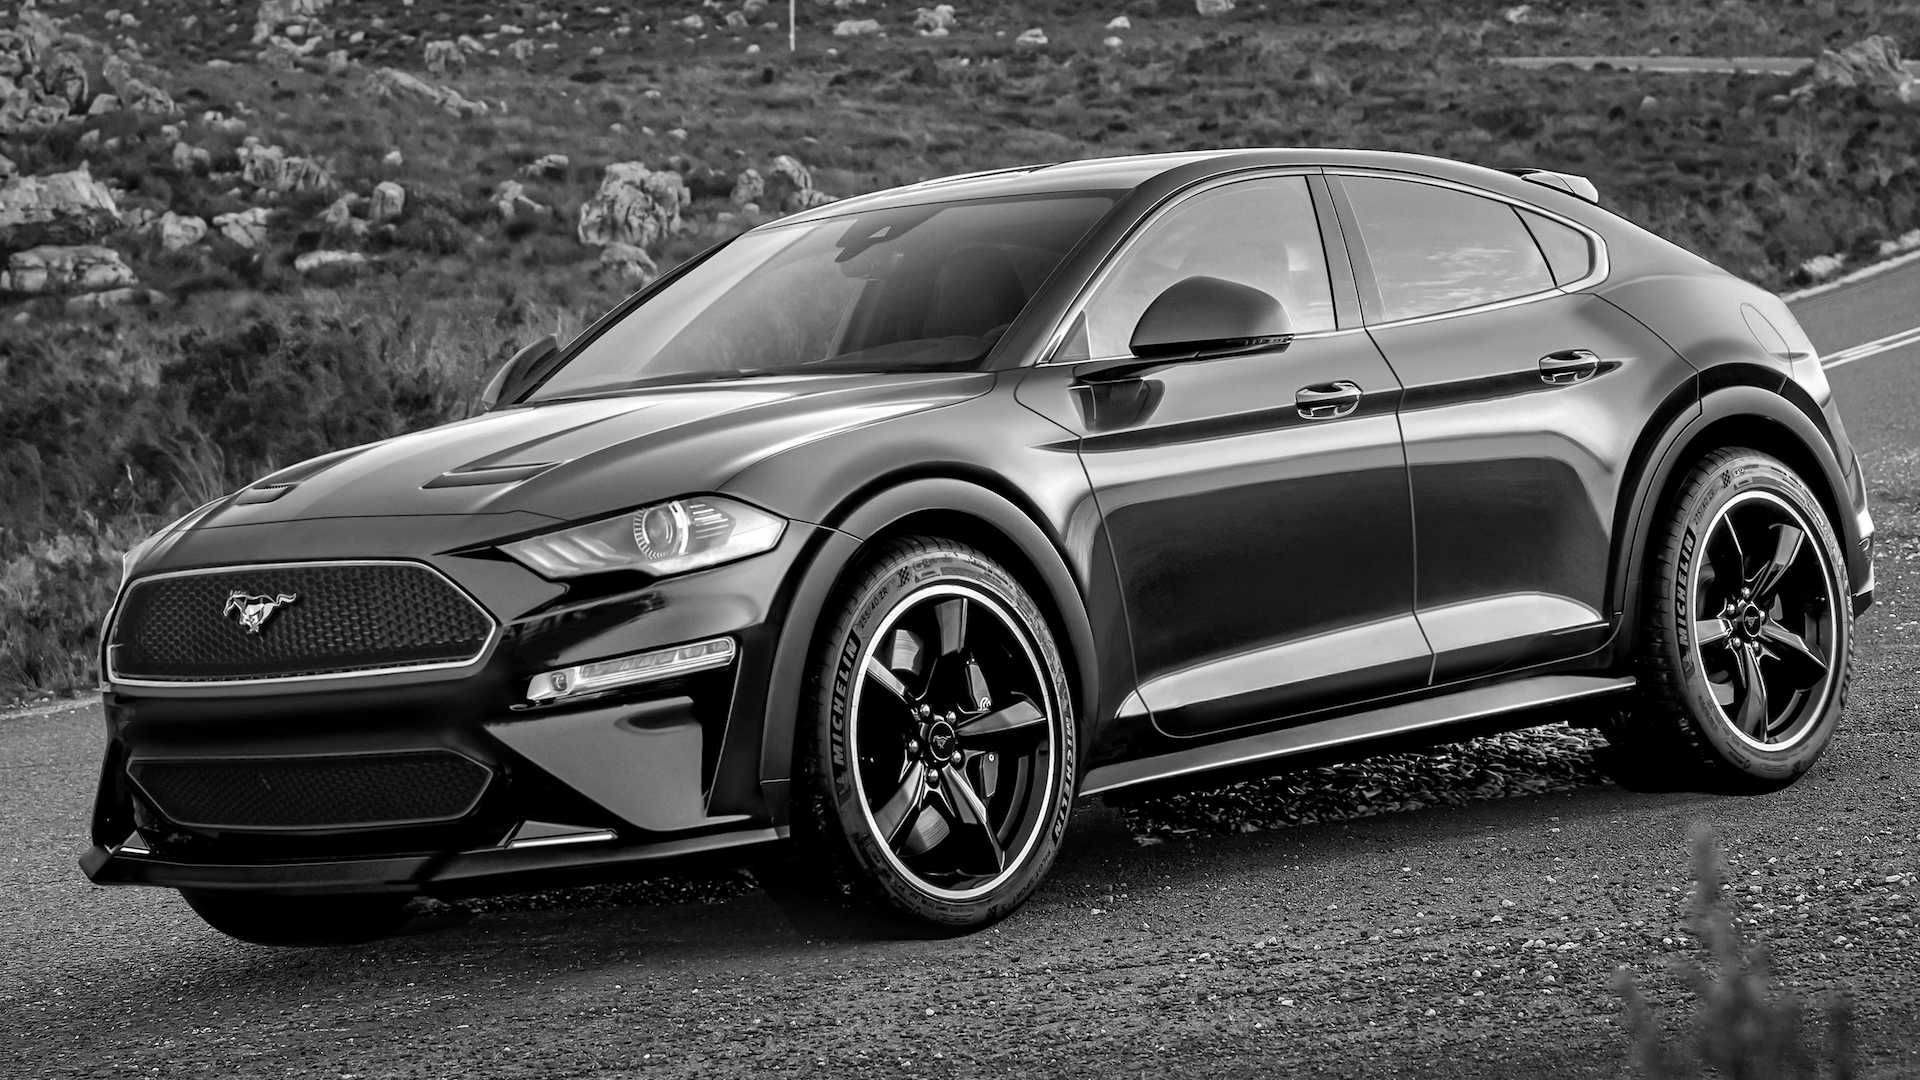 All-Electric SUV Ford Mustang Mach E